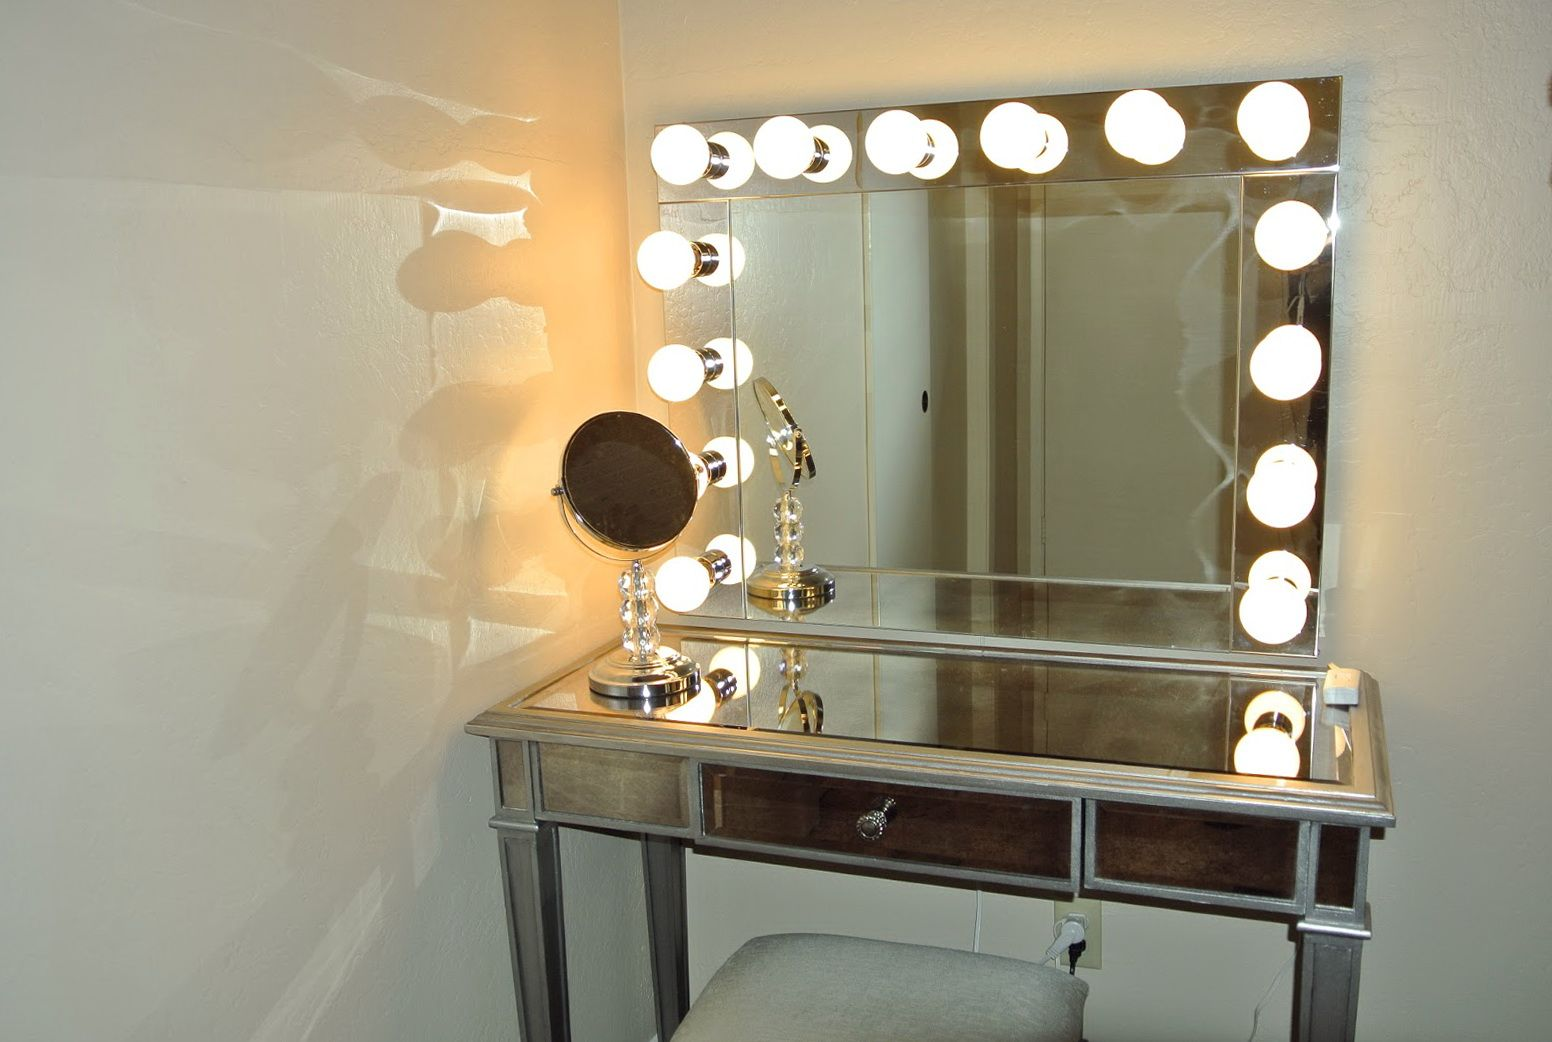 Diy vanity mirror with lights for bathroom and makeup station diy vanity mirror with lights for bathroom and makeup station mozeypictures Image collections